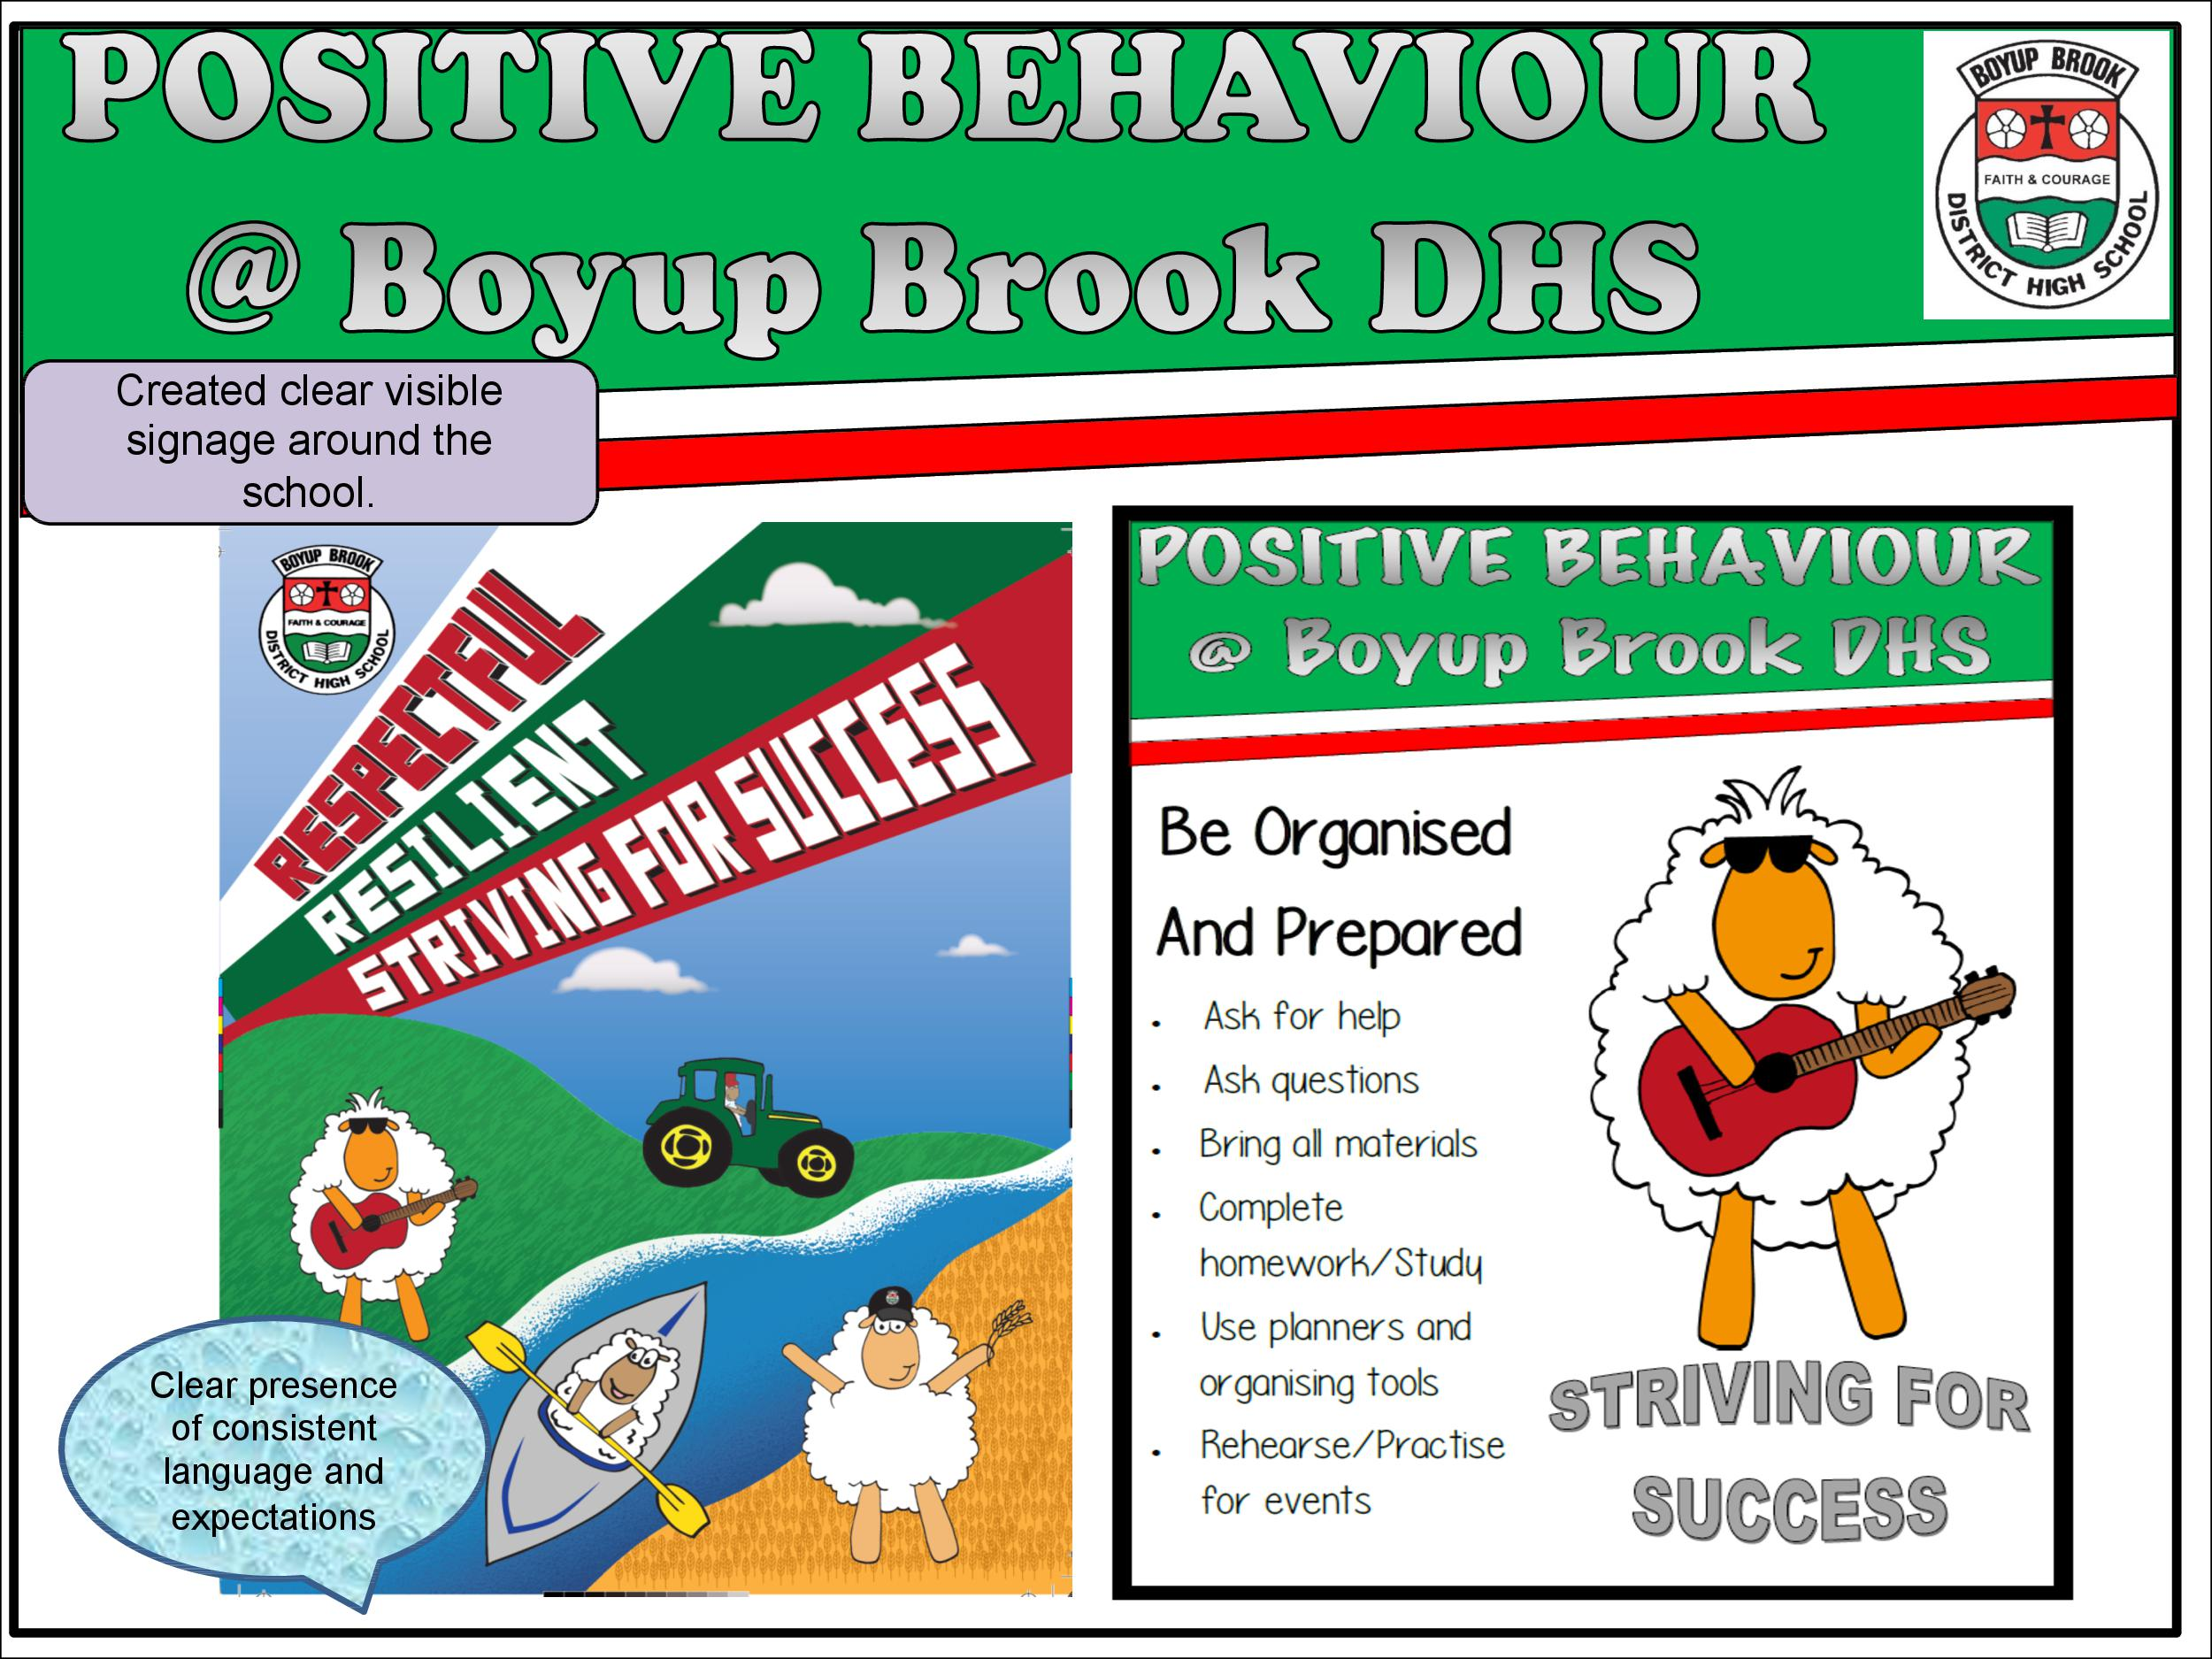 Positive Behaviour Support Page 14